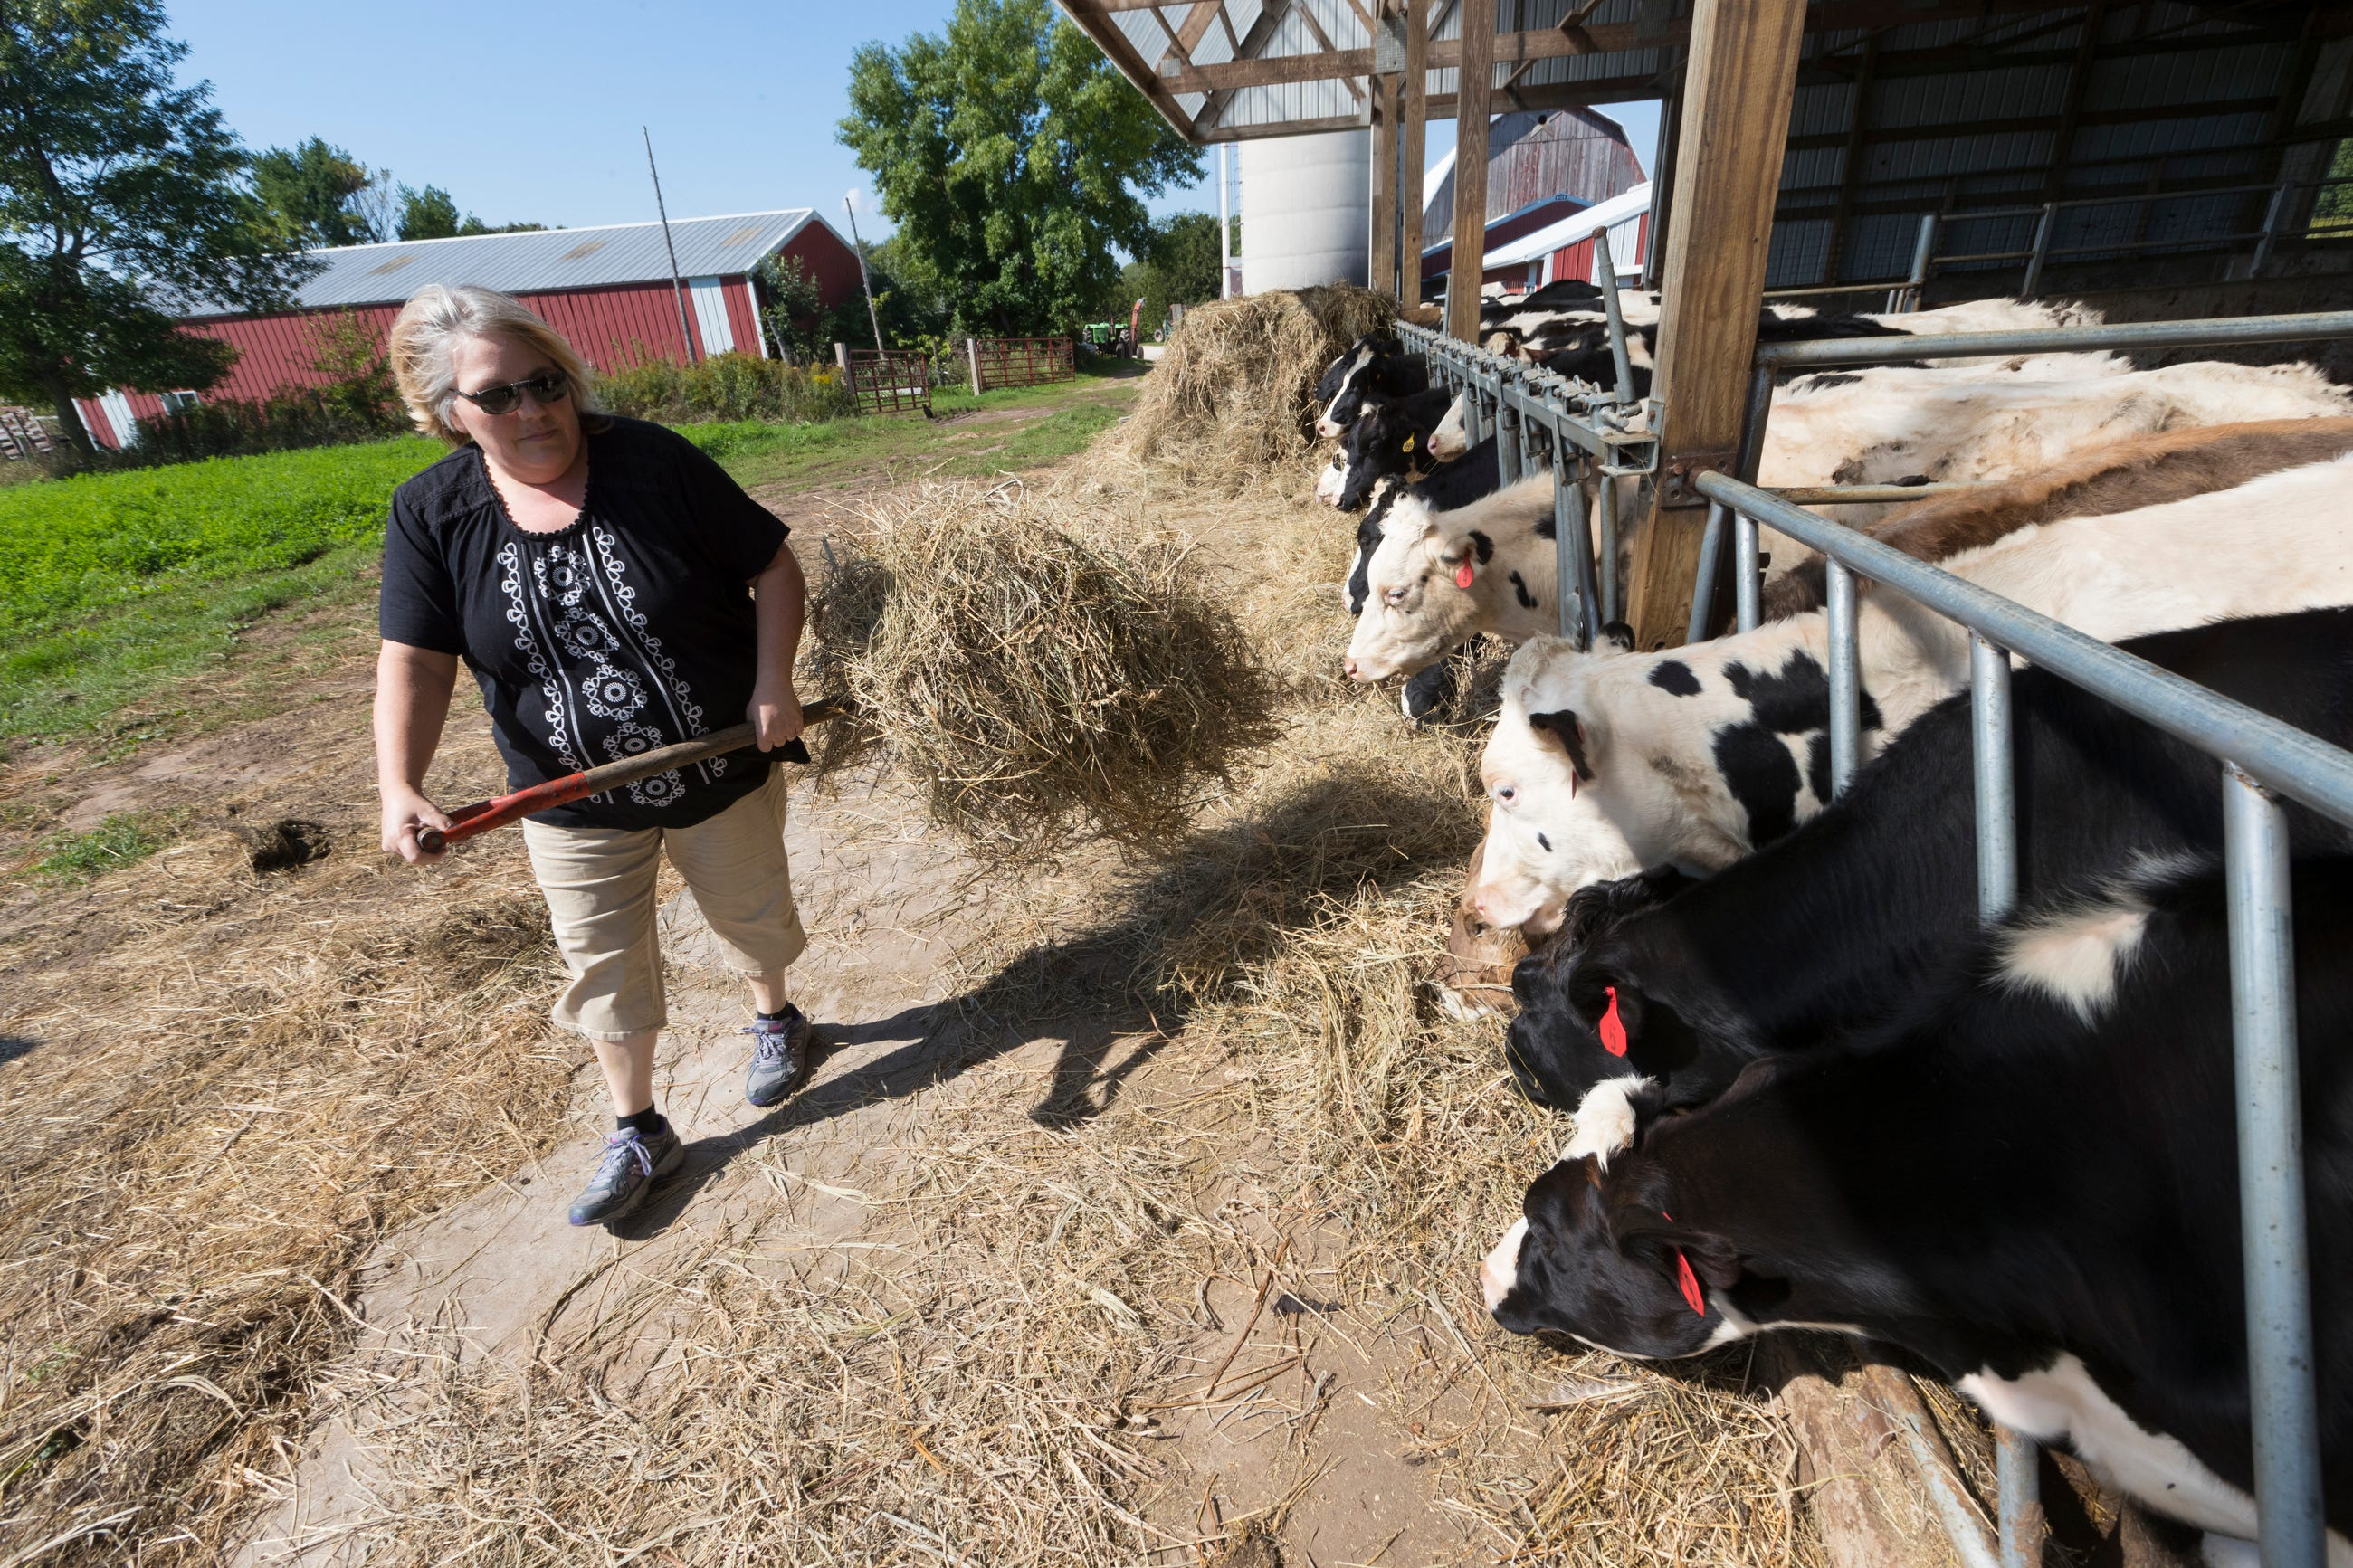 Wisconsin dairy farmers, in debt and out of options, turn to GoFundMe for bailout | Milwaukee Journal Sentinel